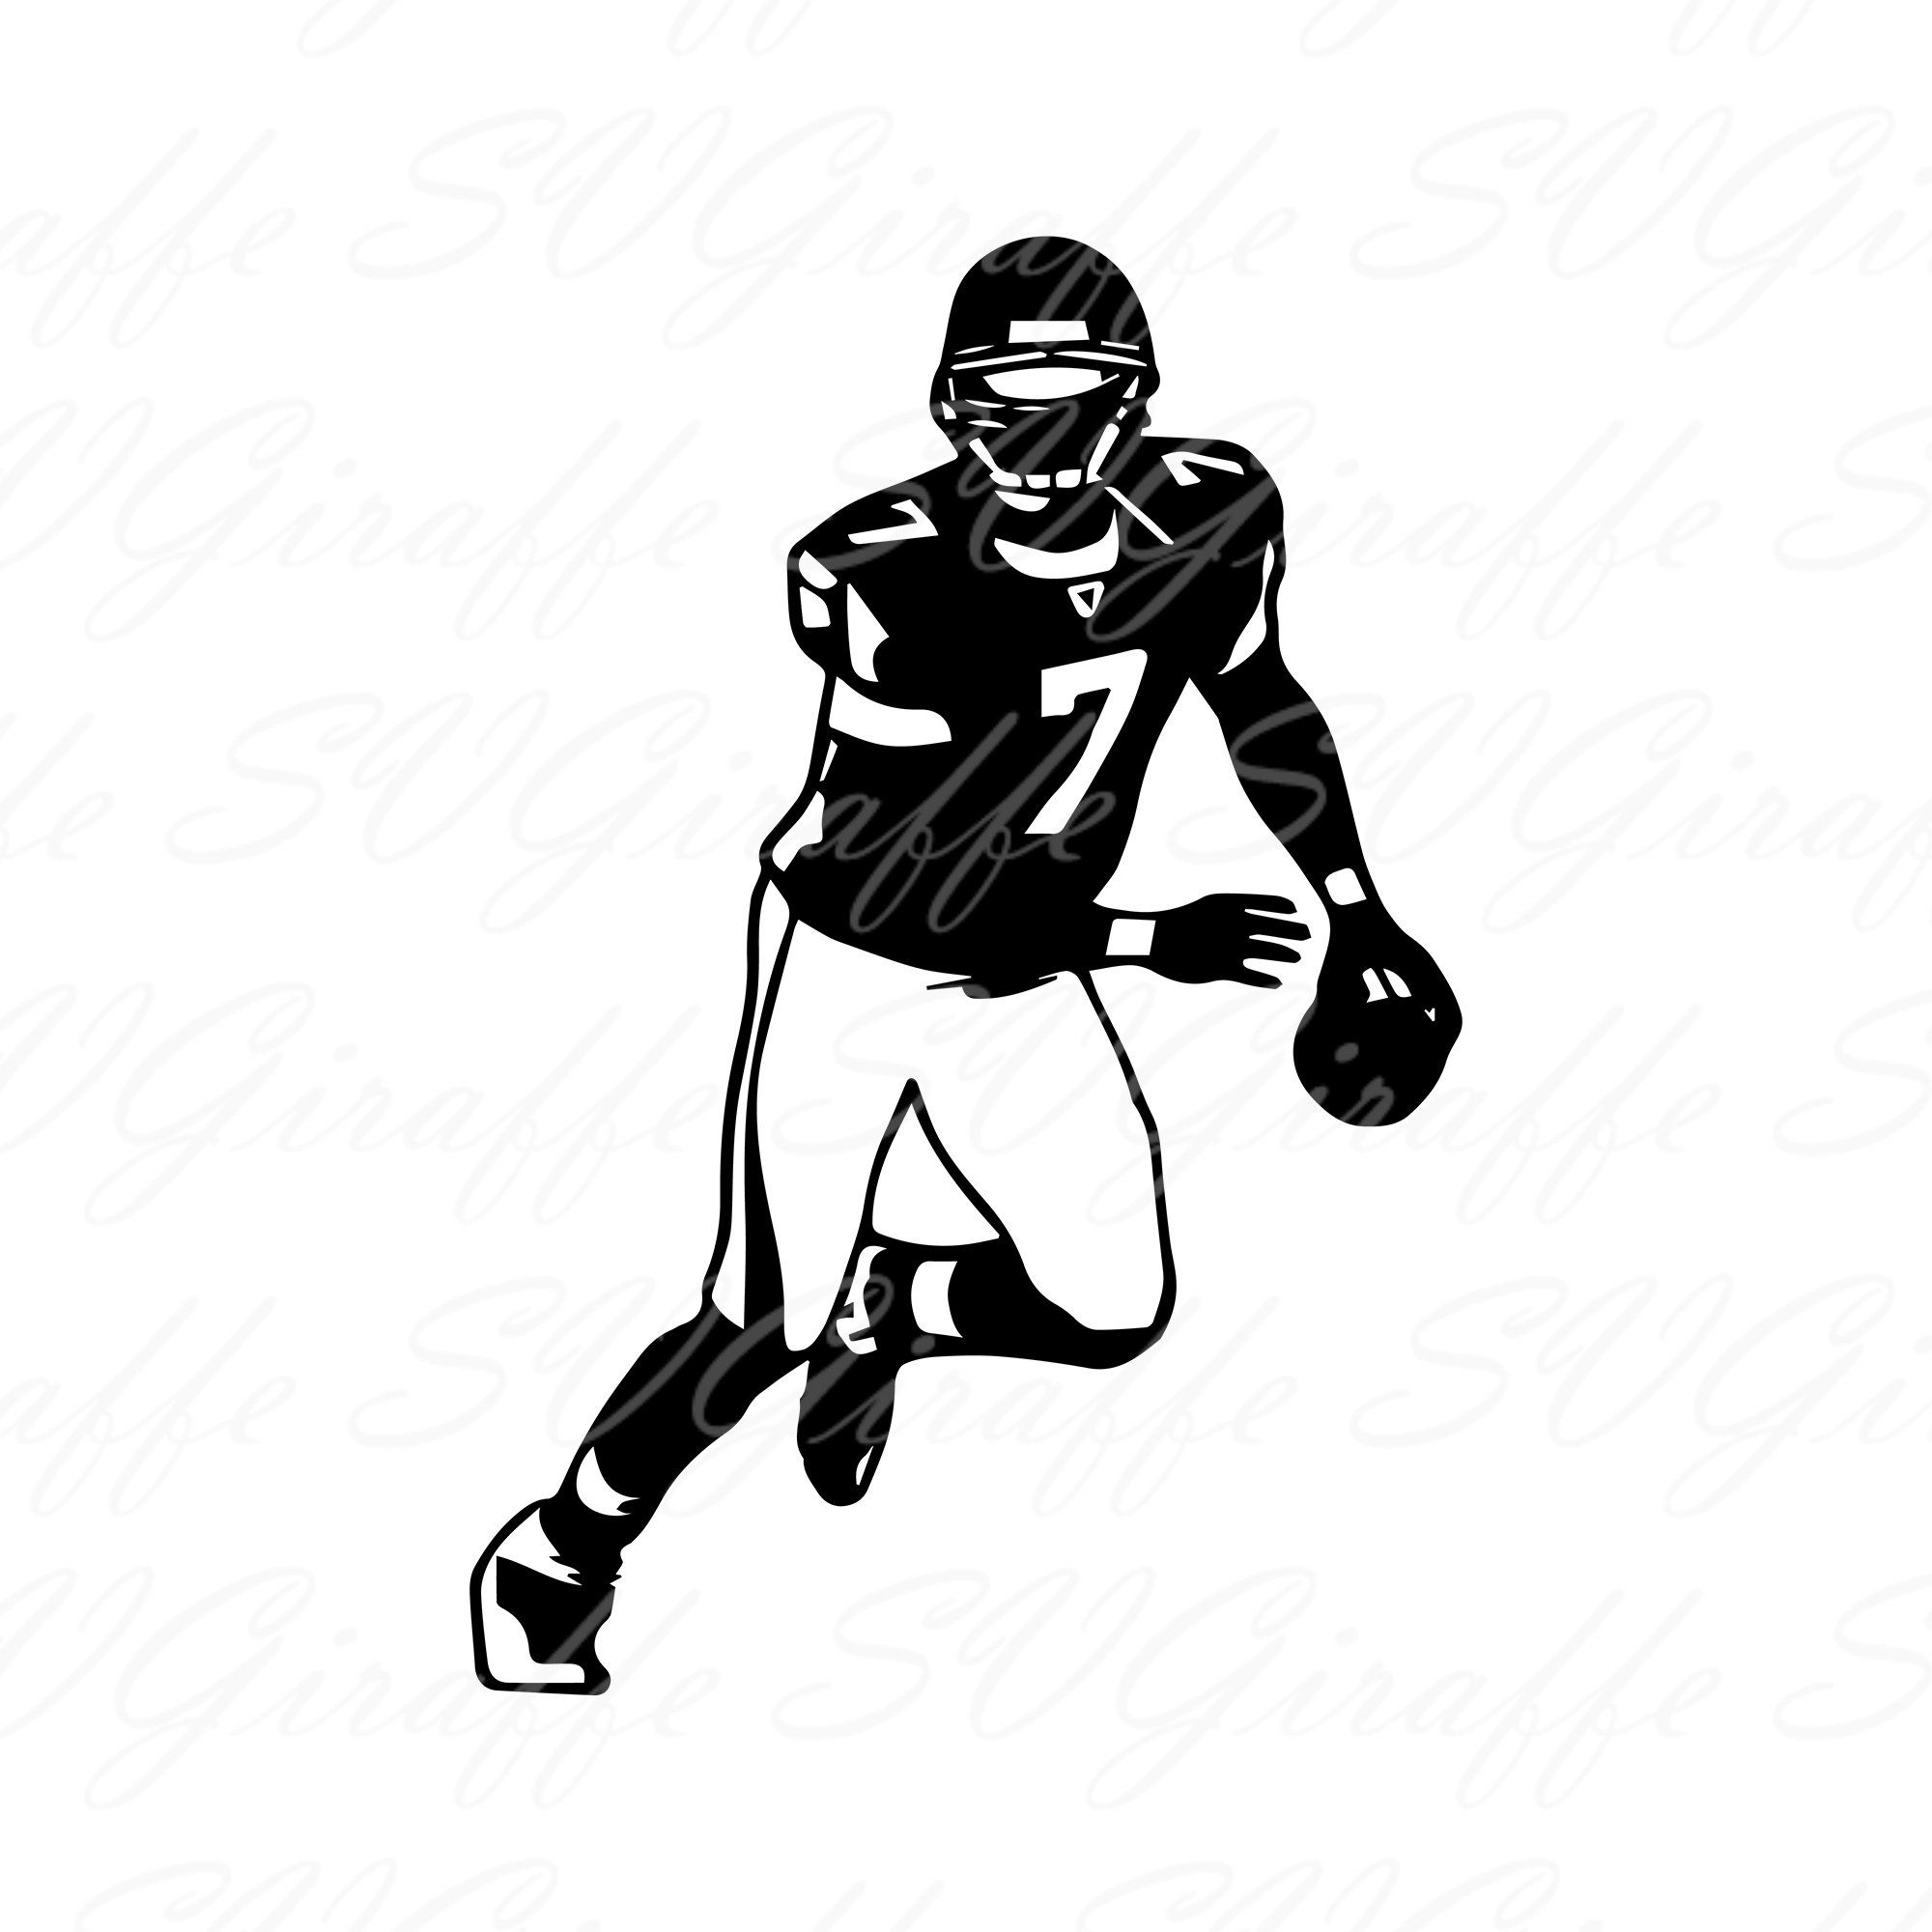 Michael Vick Svg Dxf Png Pdf Jpg Eps Files Atlanta Falcons Etsy In 2020 Michael Vick Mike Vick Atlanta Falcons Svg